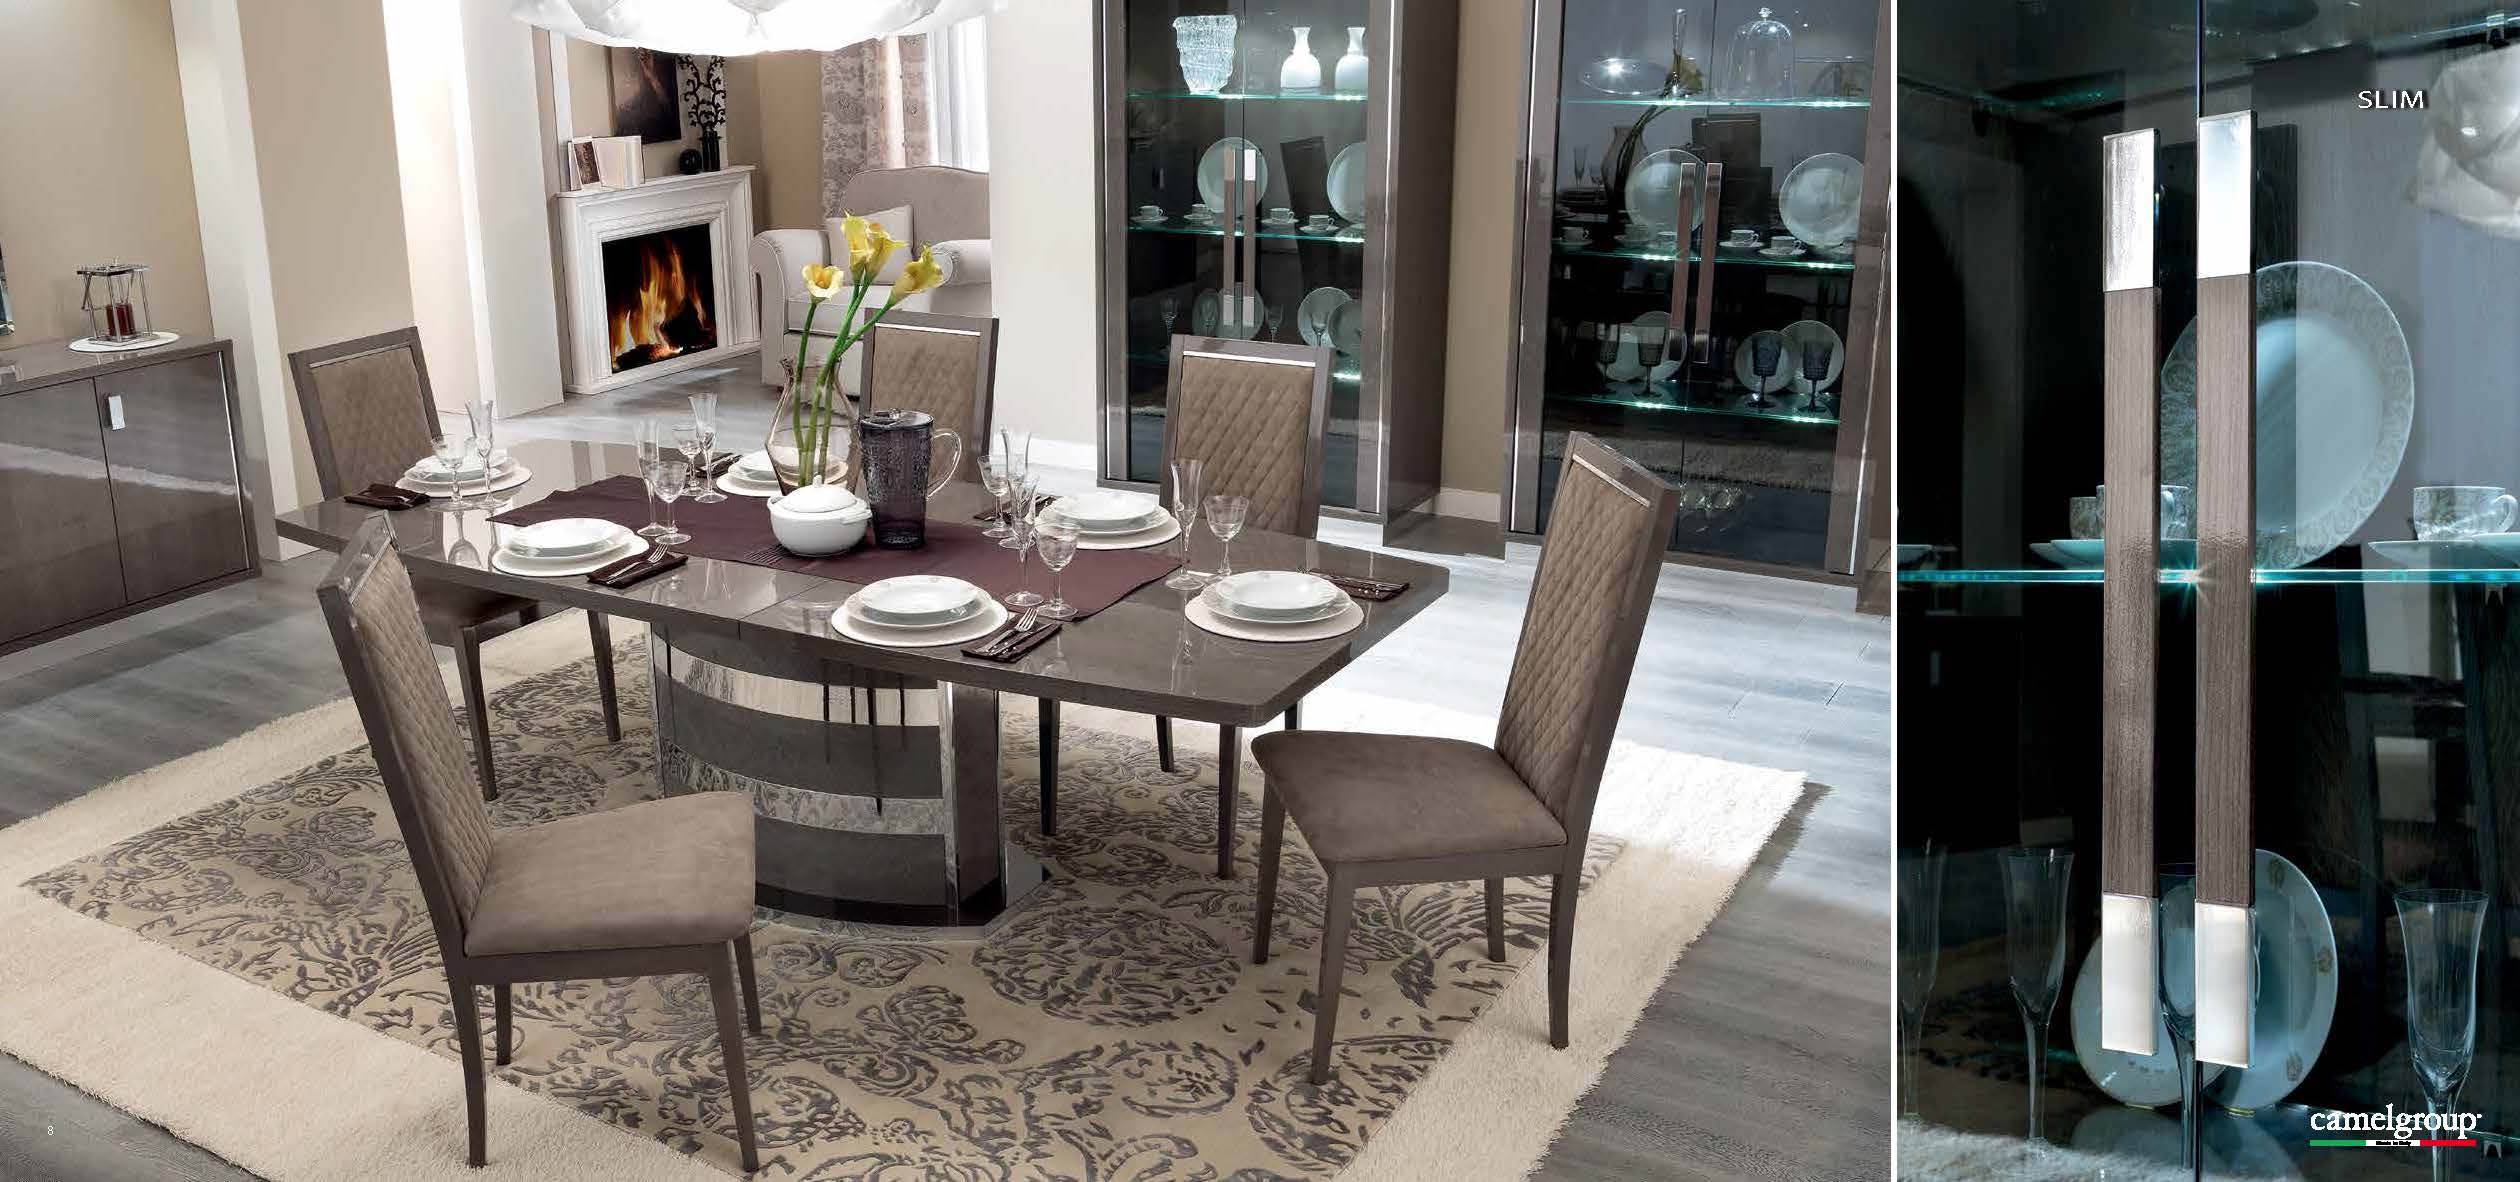 Platinum slim dining modern formal dining sets dining for Dining space